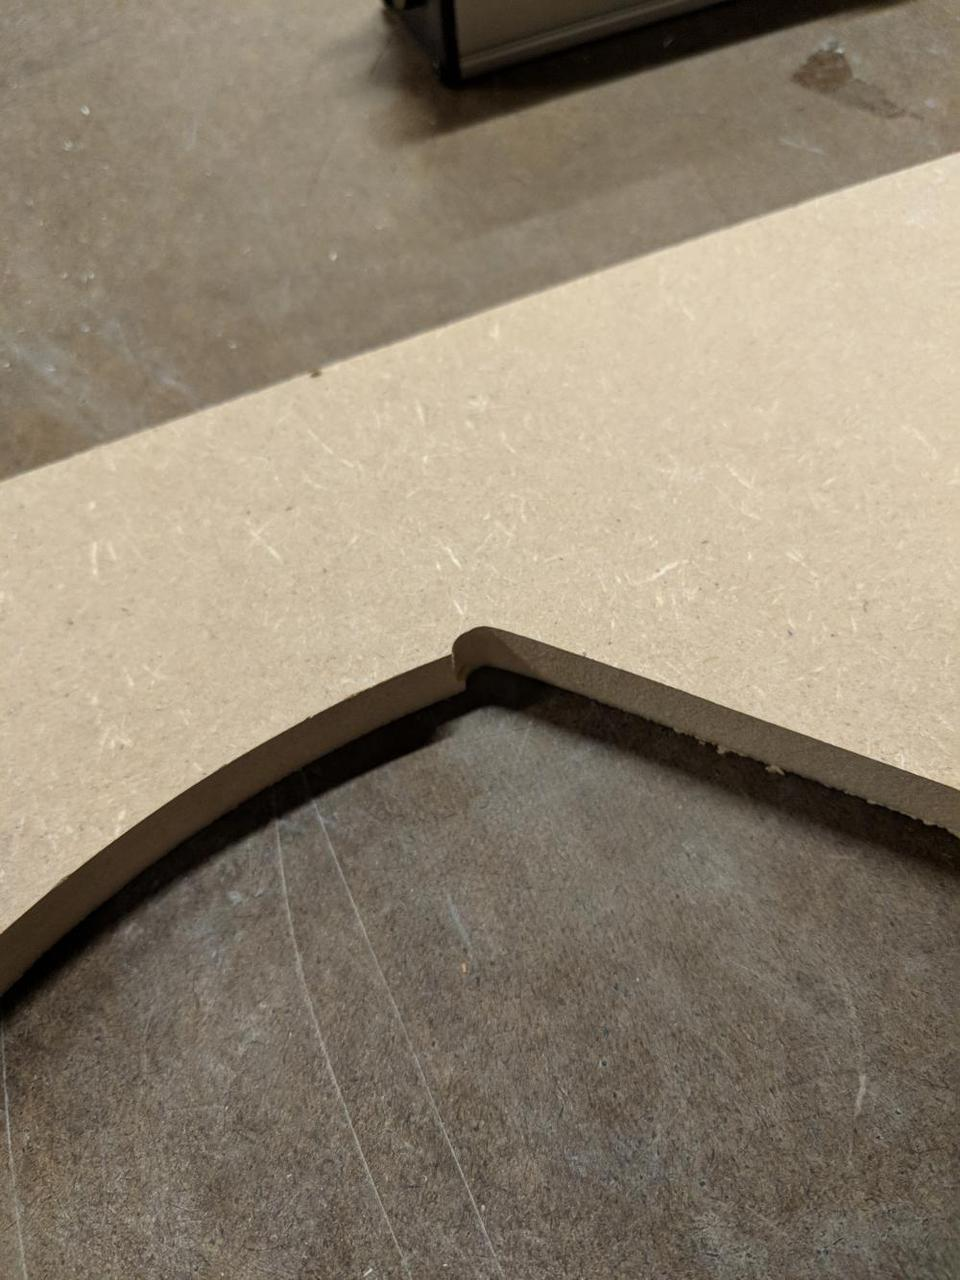 edge of piece of wood with sloppy corner, with two cut lines partially overlapped.